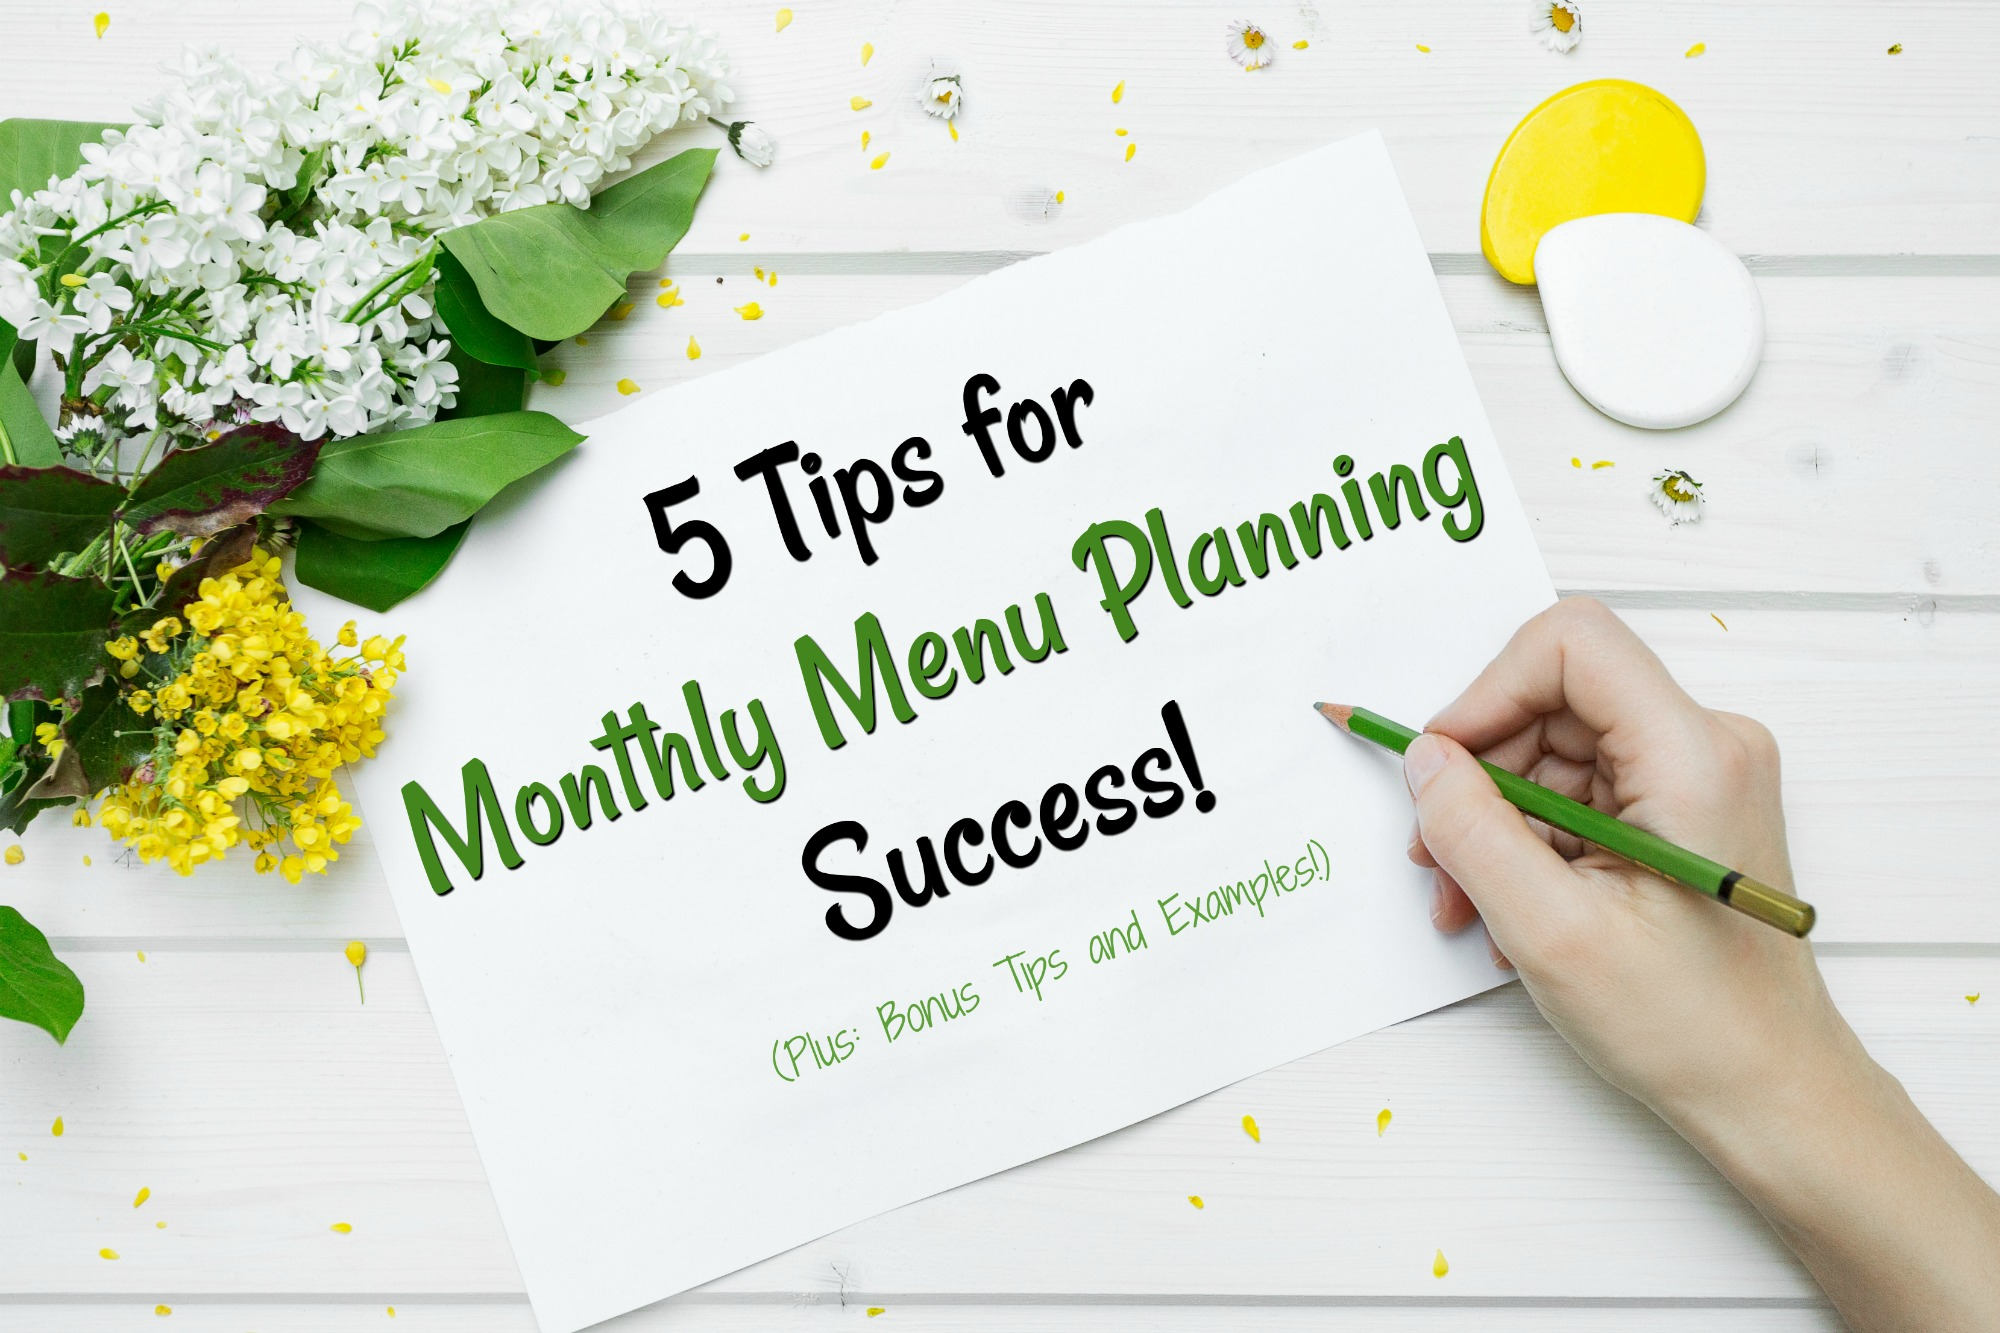 5 Tips for Monthly Menu Planning Success!